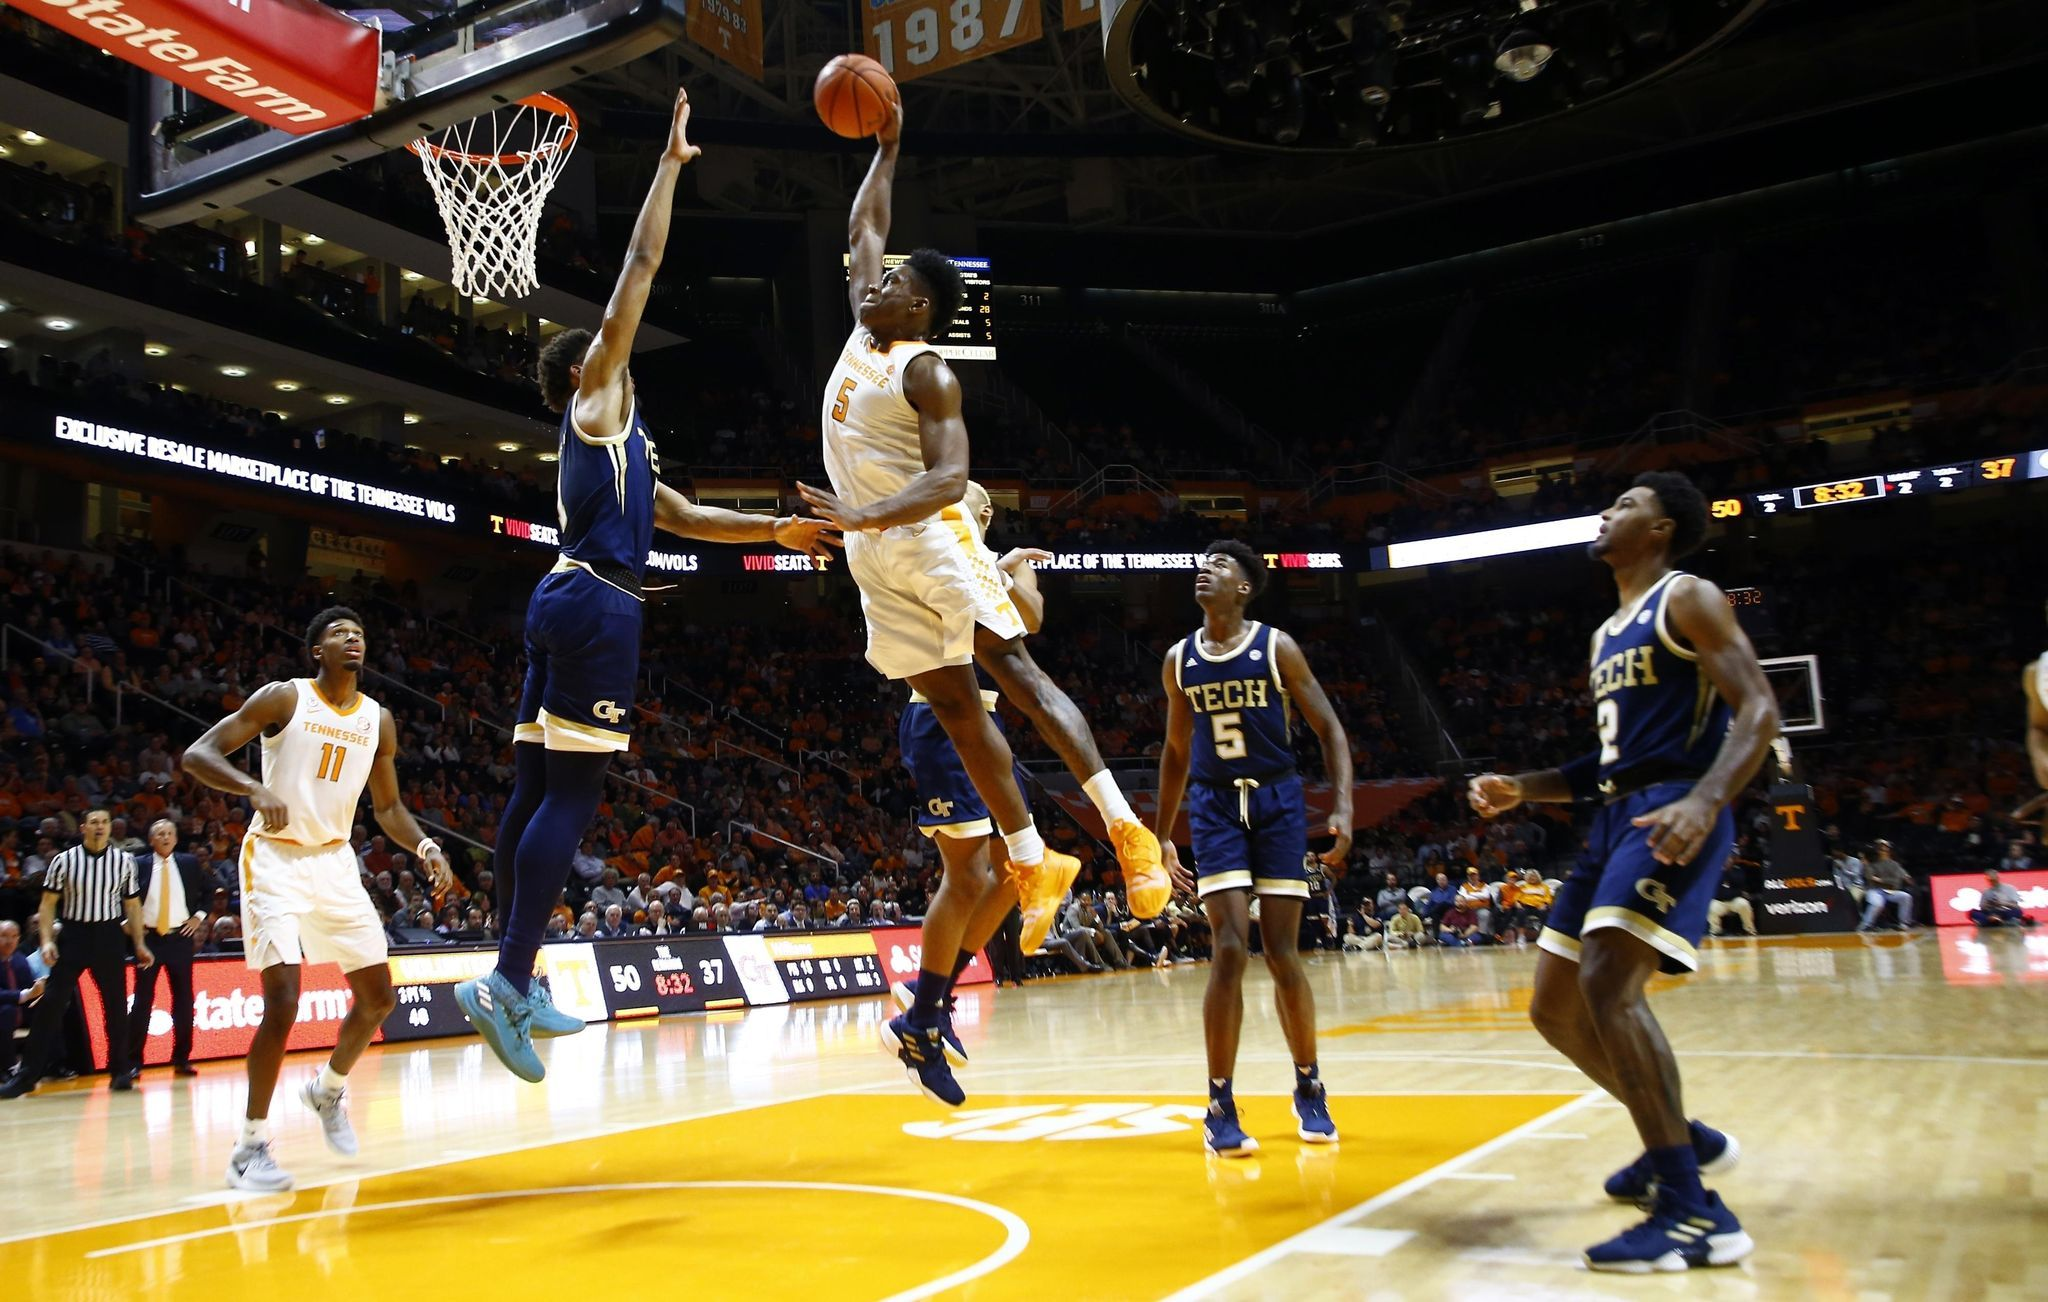 No. 5 Tennessee clamps down on defense to beat